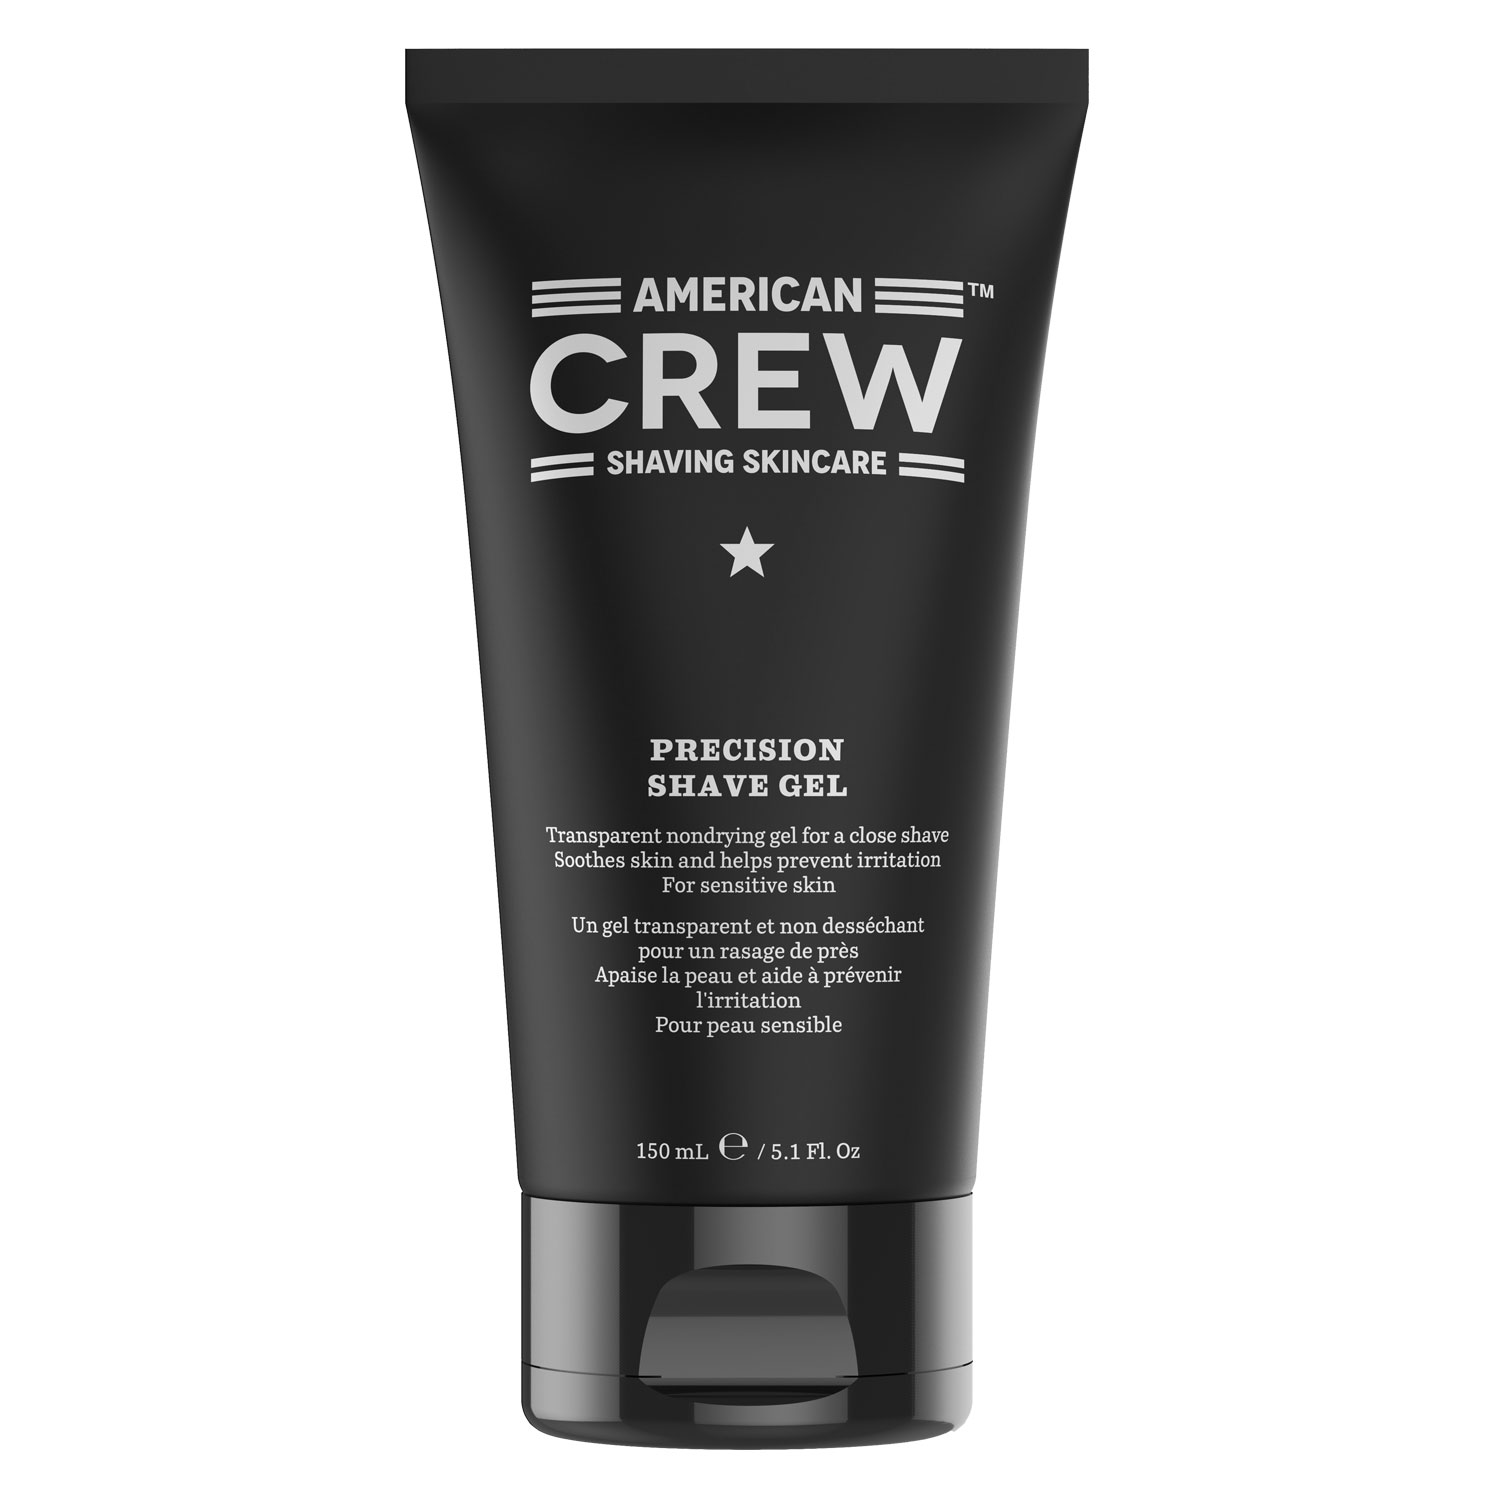 Shaving Skincare - Precision Shave Gel NEW